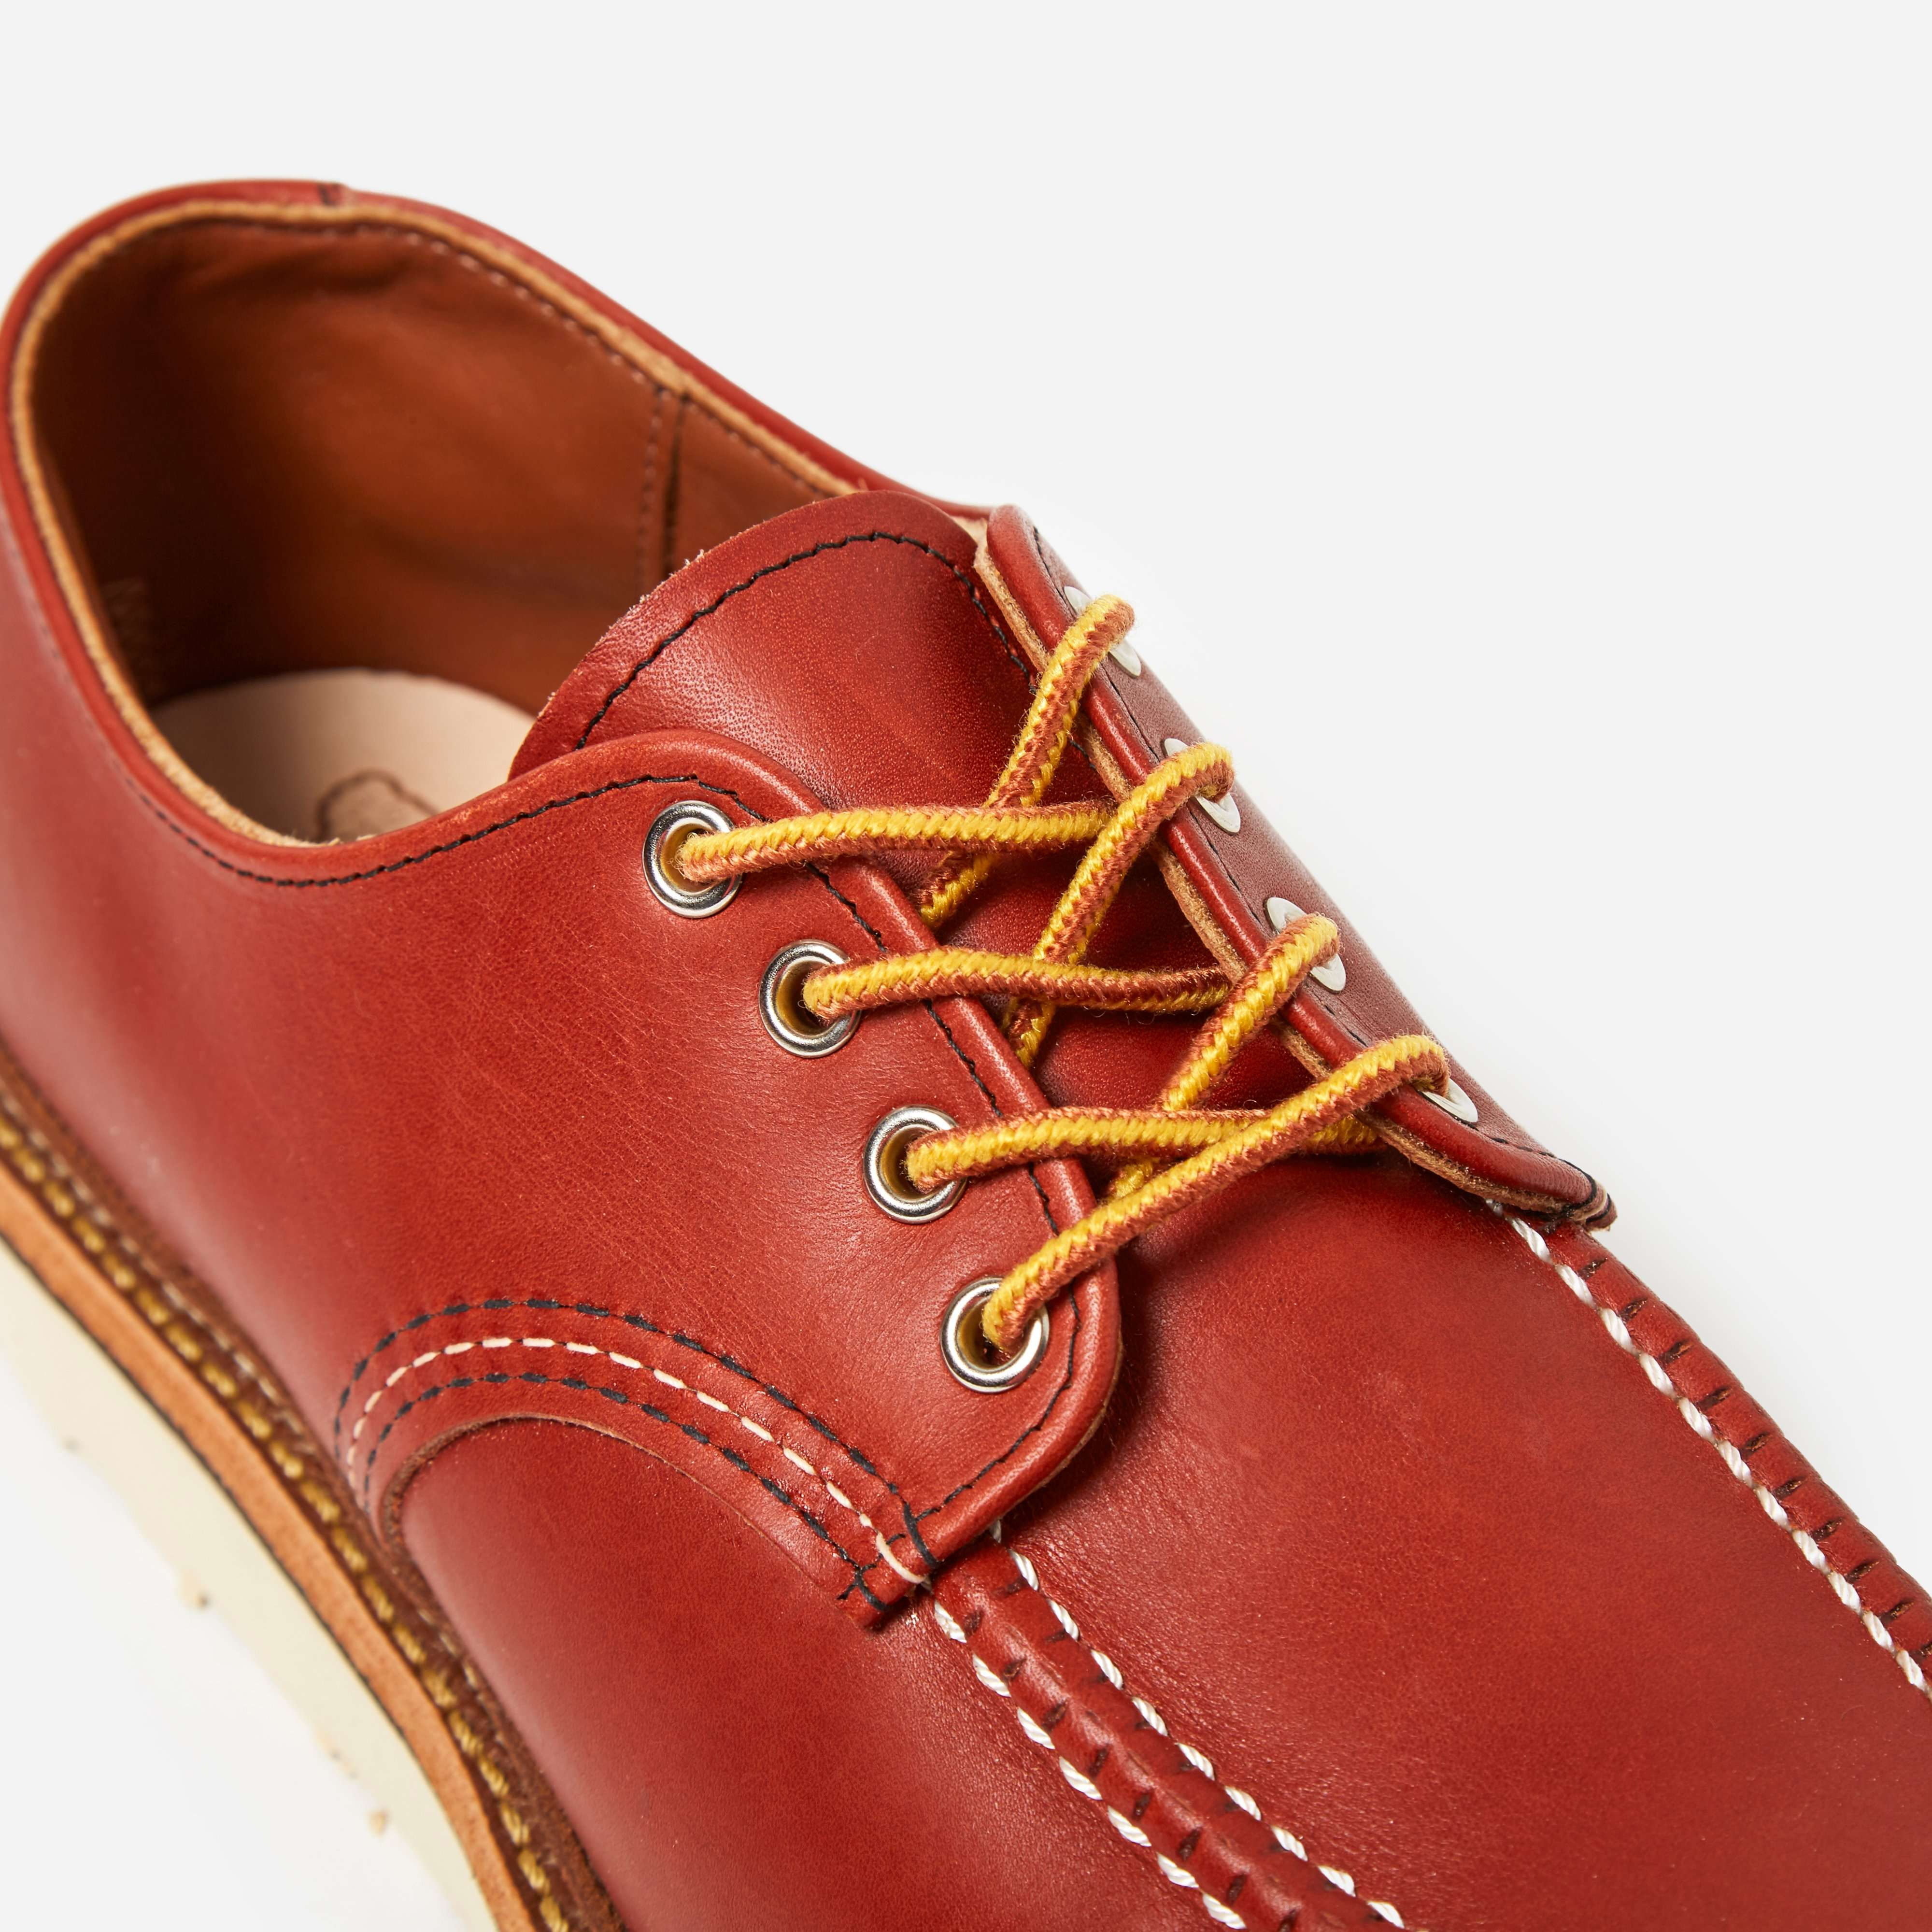 Red Wing 8103 Classic Oxford Boot